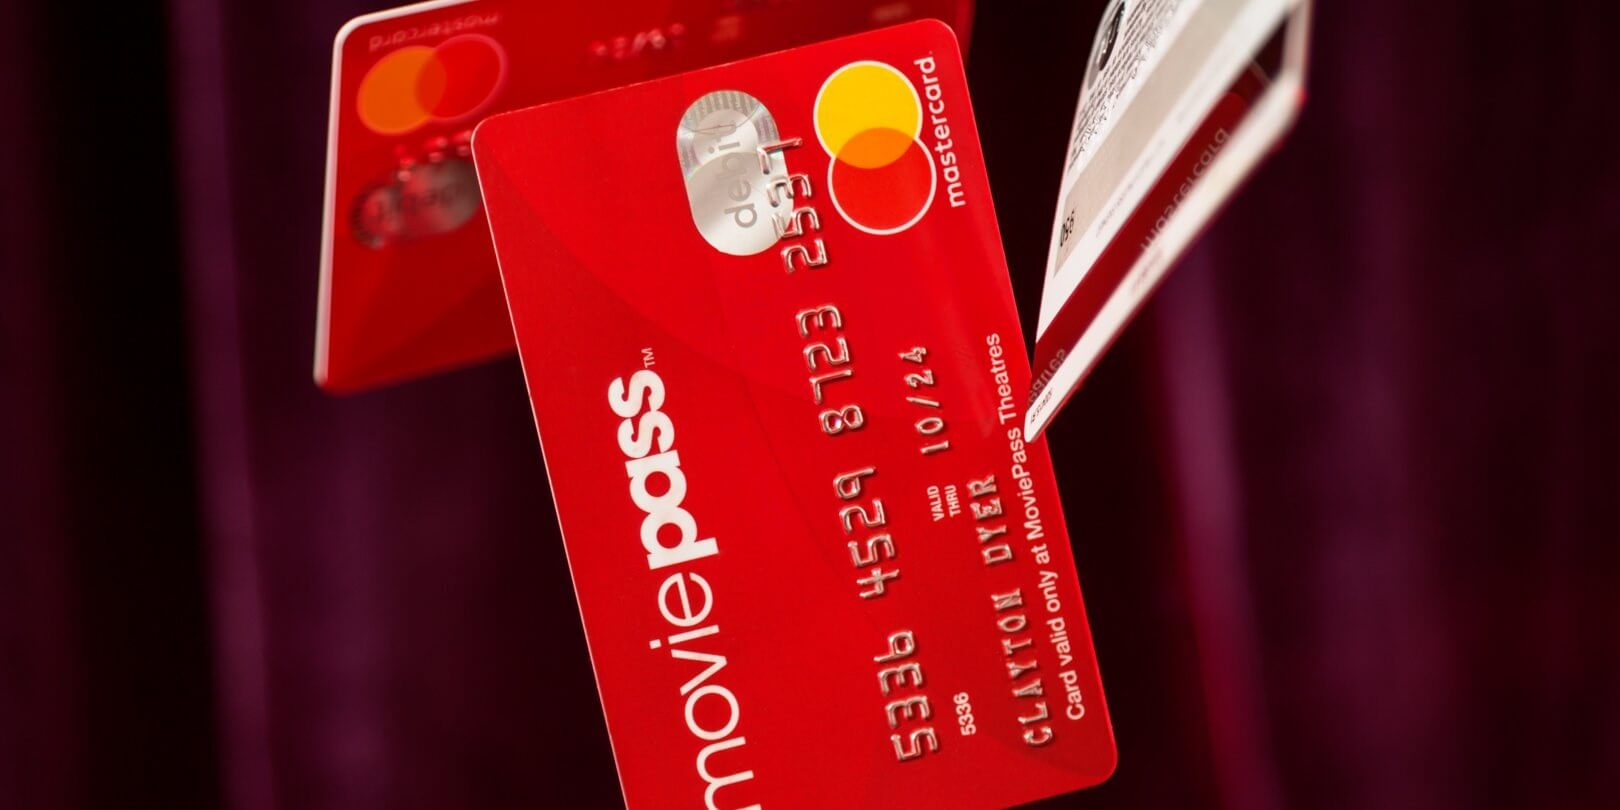 MoviePass brings back its $10-per-month unlimited movie ticket plan for a limited time